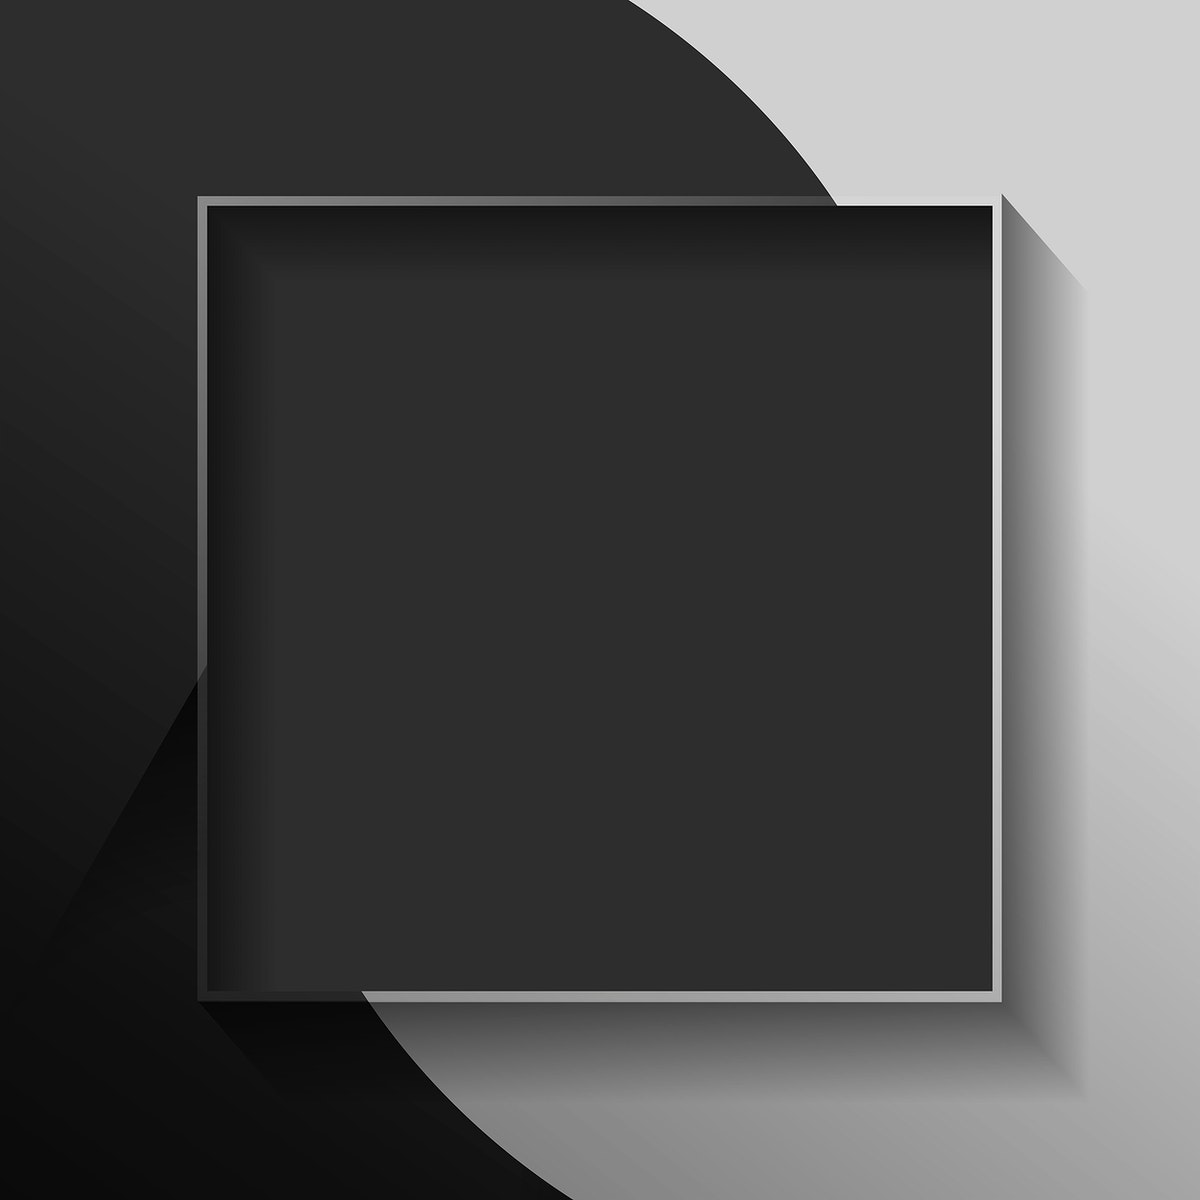 Blank square black abstract frame vector